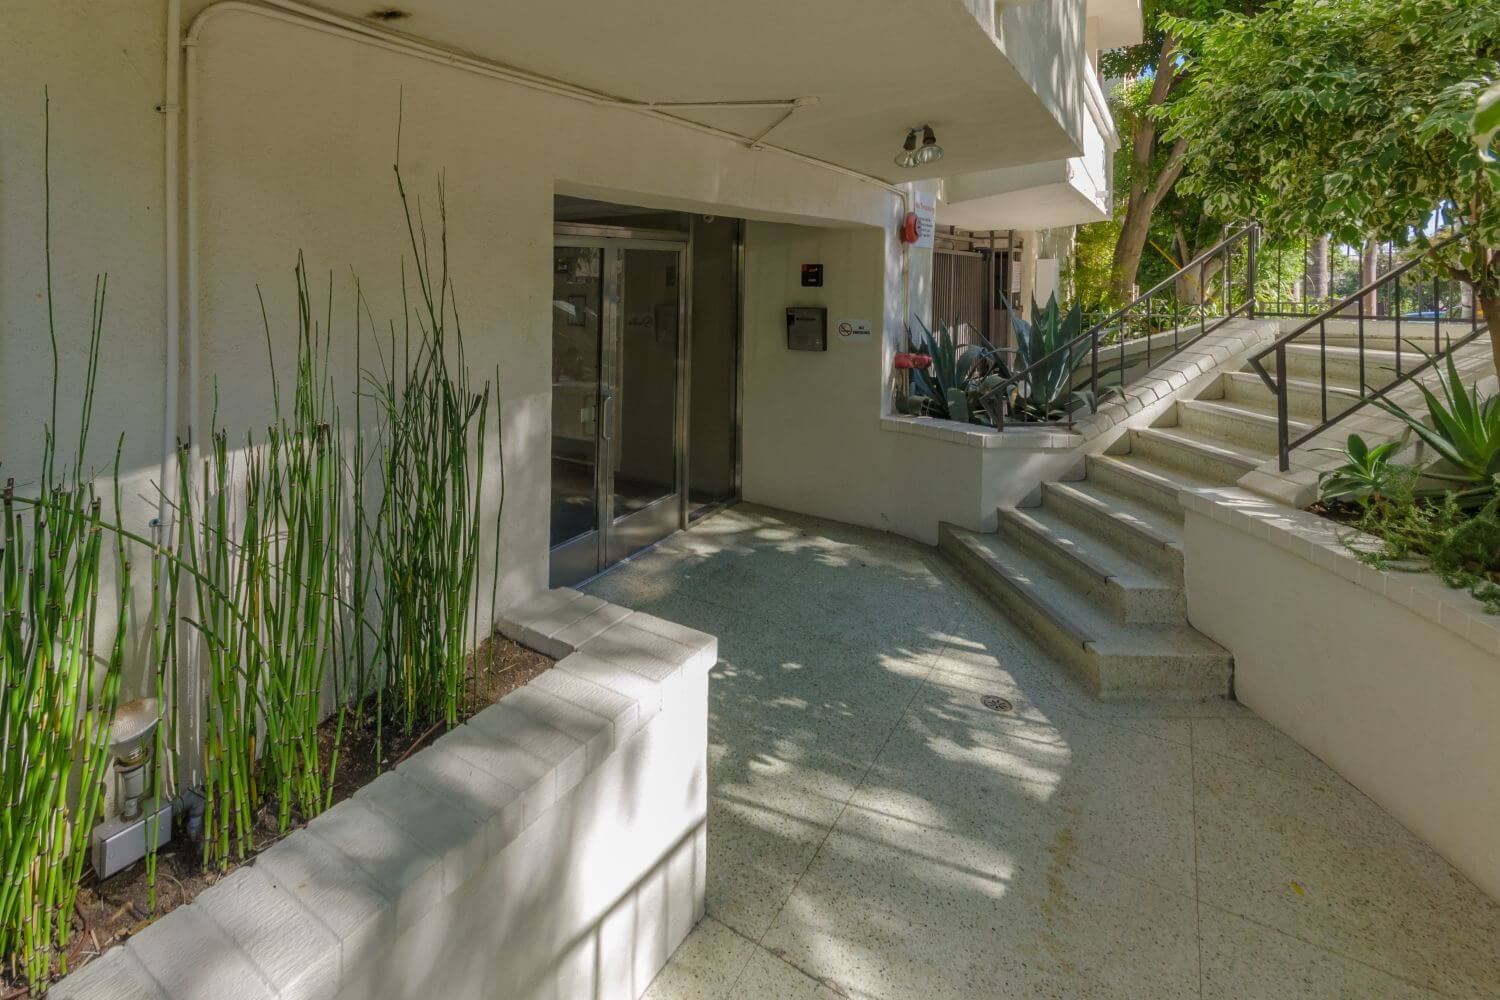 Larrabee Manor Is An 86 Unit Courtyard Style Midrise Condo Located In The Norma Triangle Neighborhood Of West Hollywood Building Was Built 1963 As